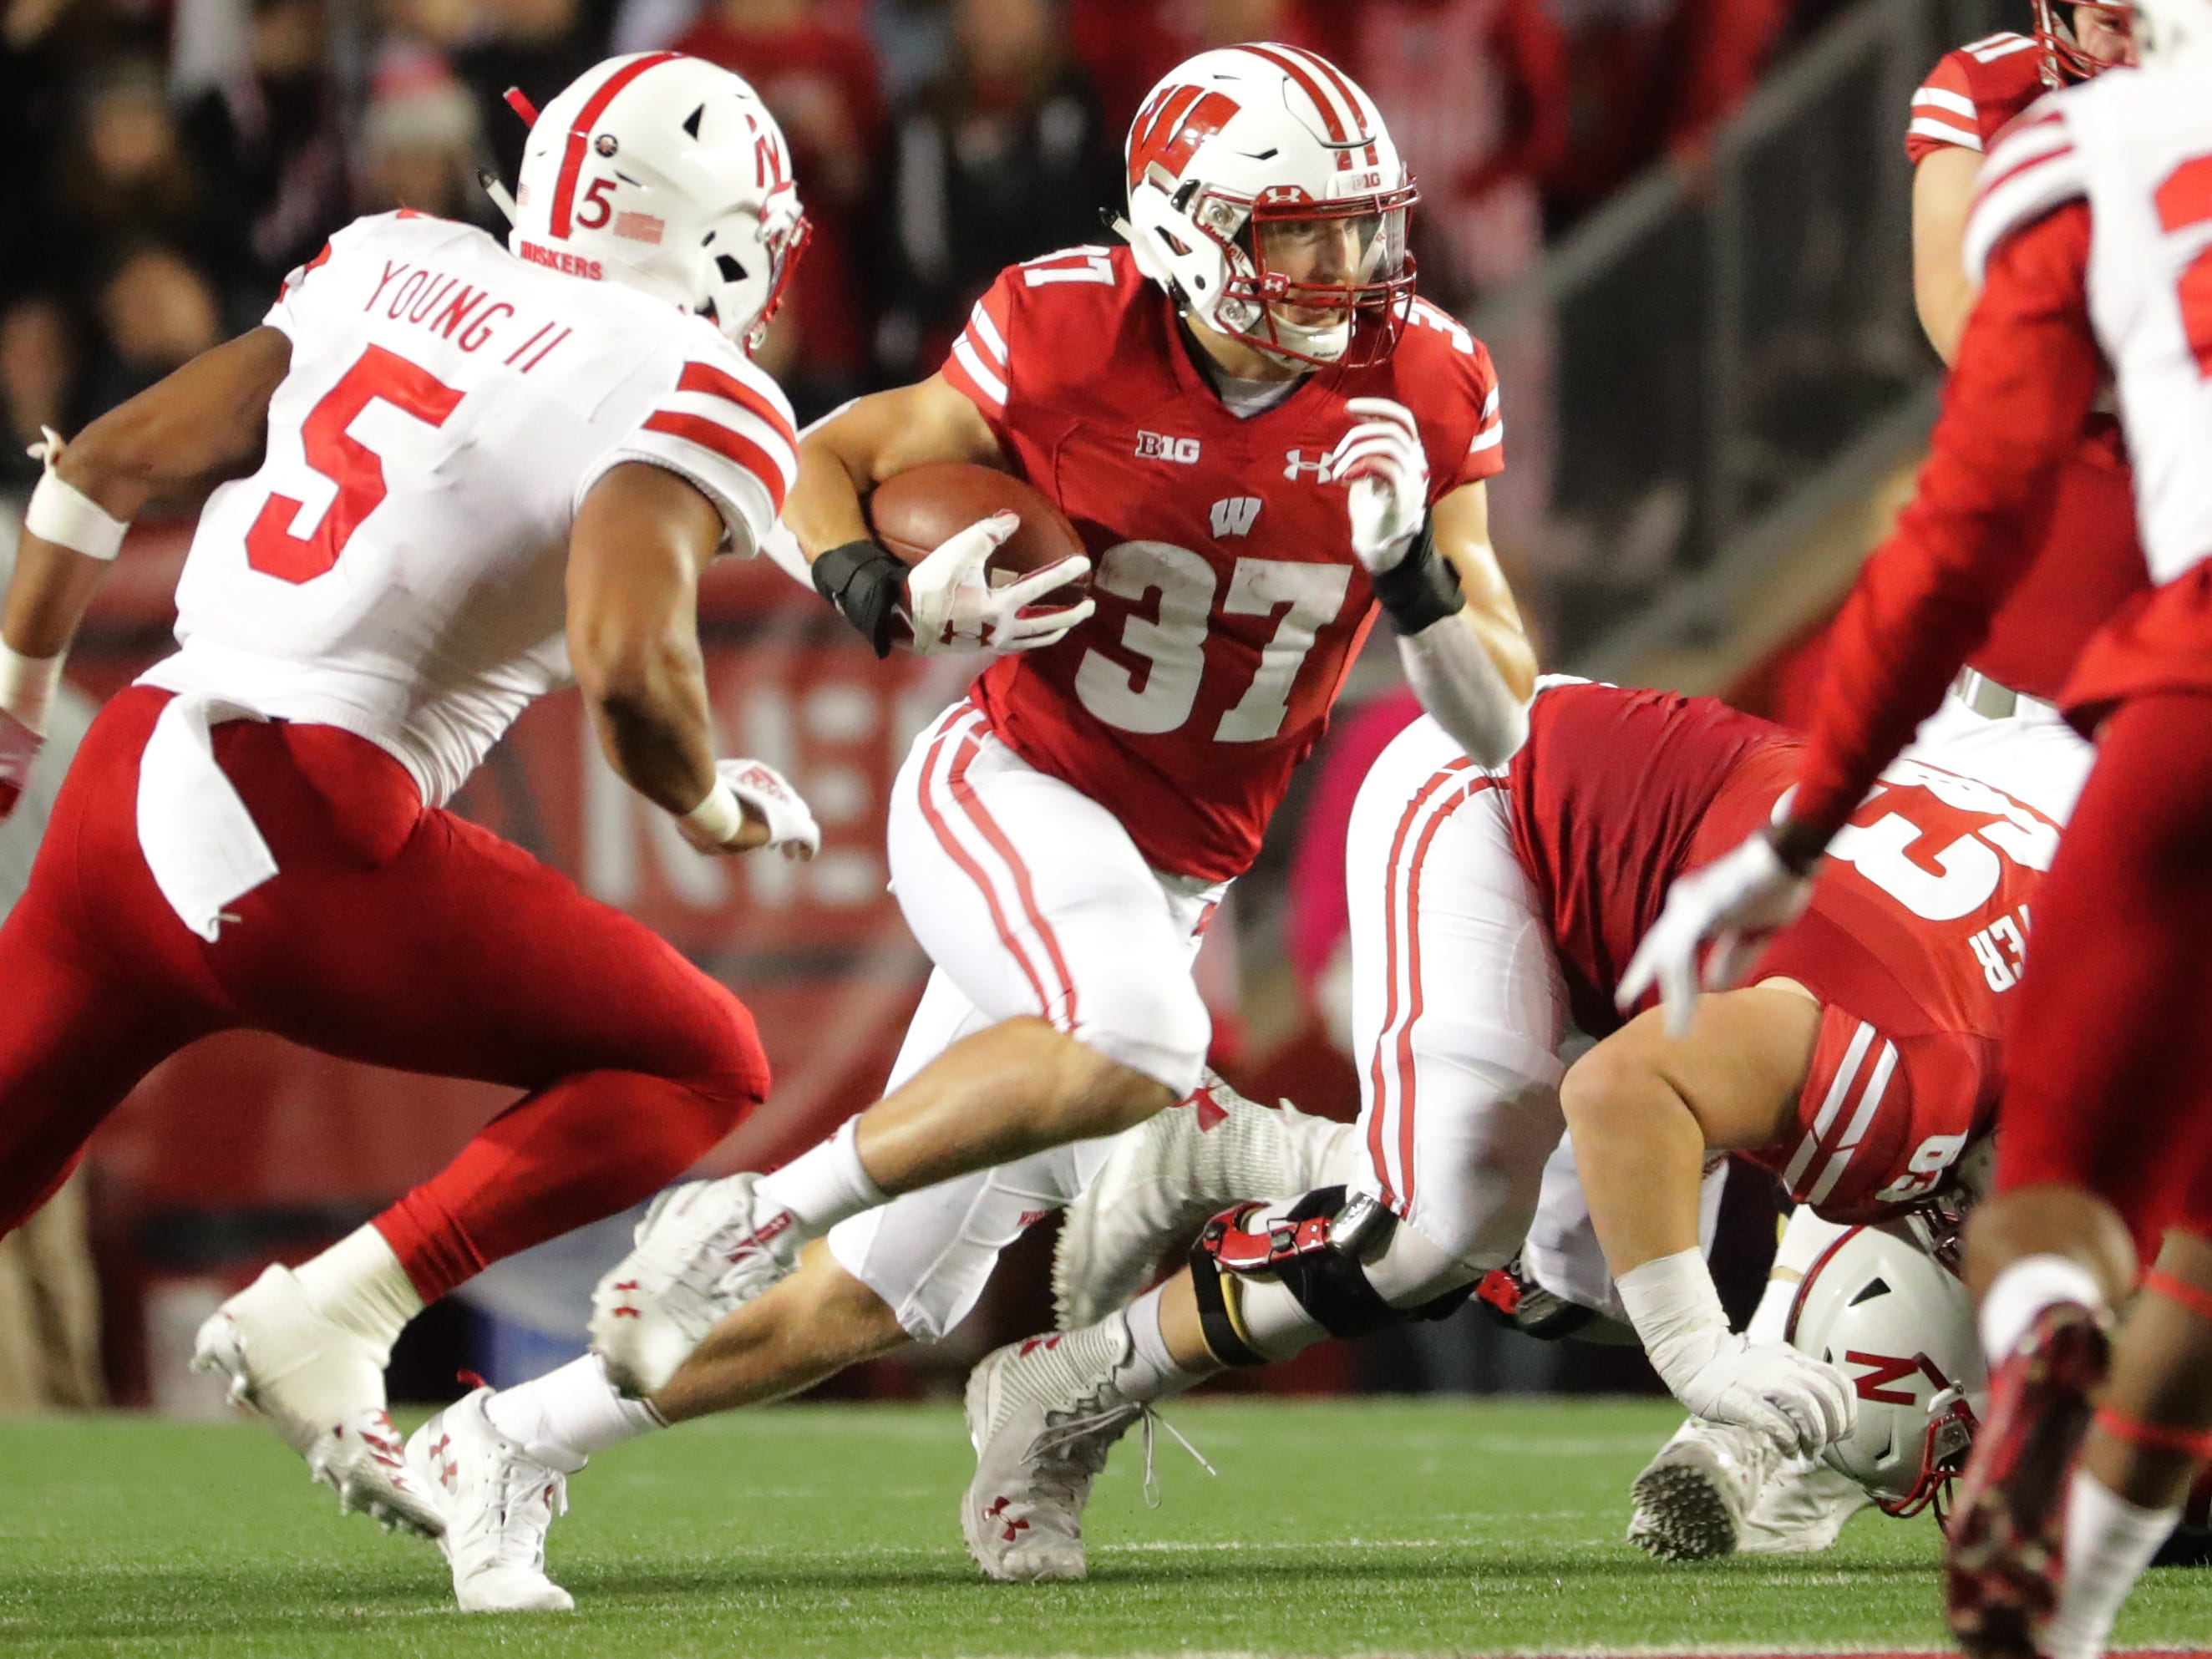 Wisconsin's offensive line provides running back Garrett Groshek a nice hole to run through in Nebraska's defense during the second quarter on Saturday night.